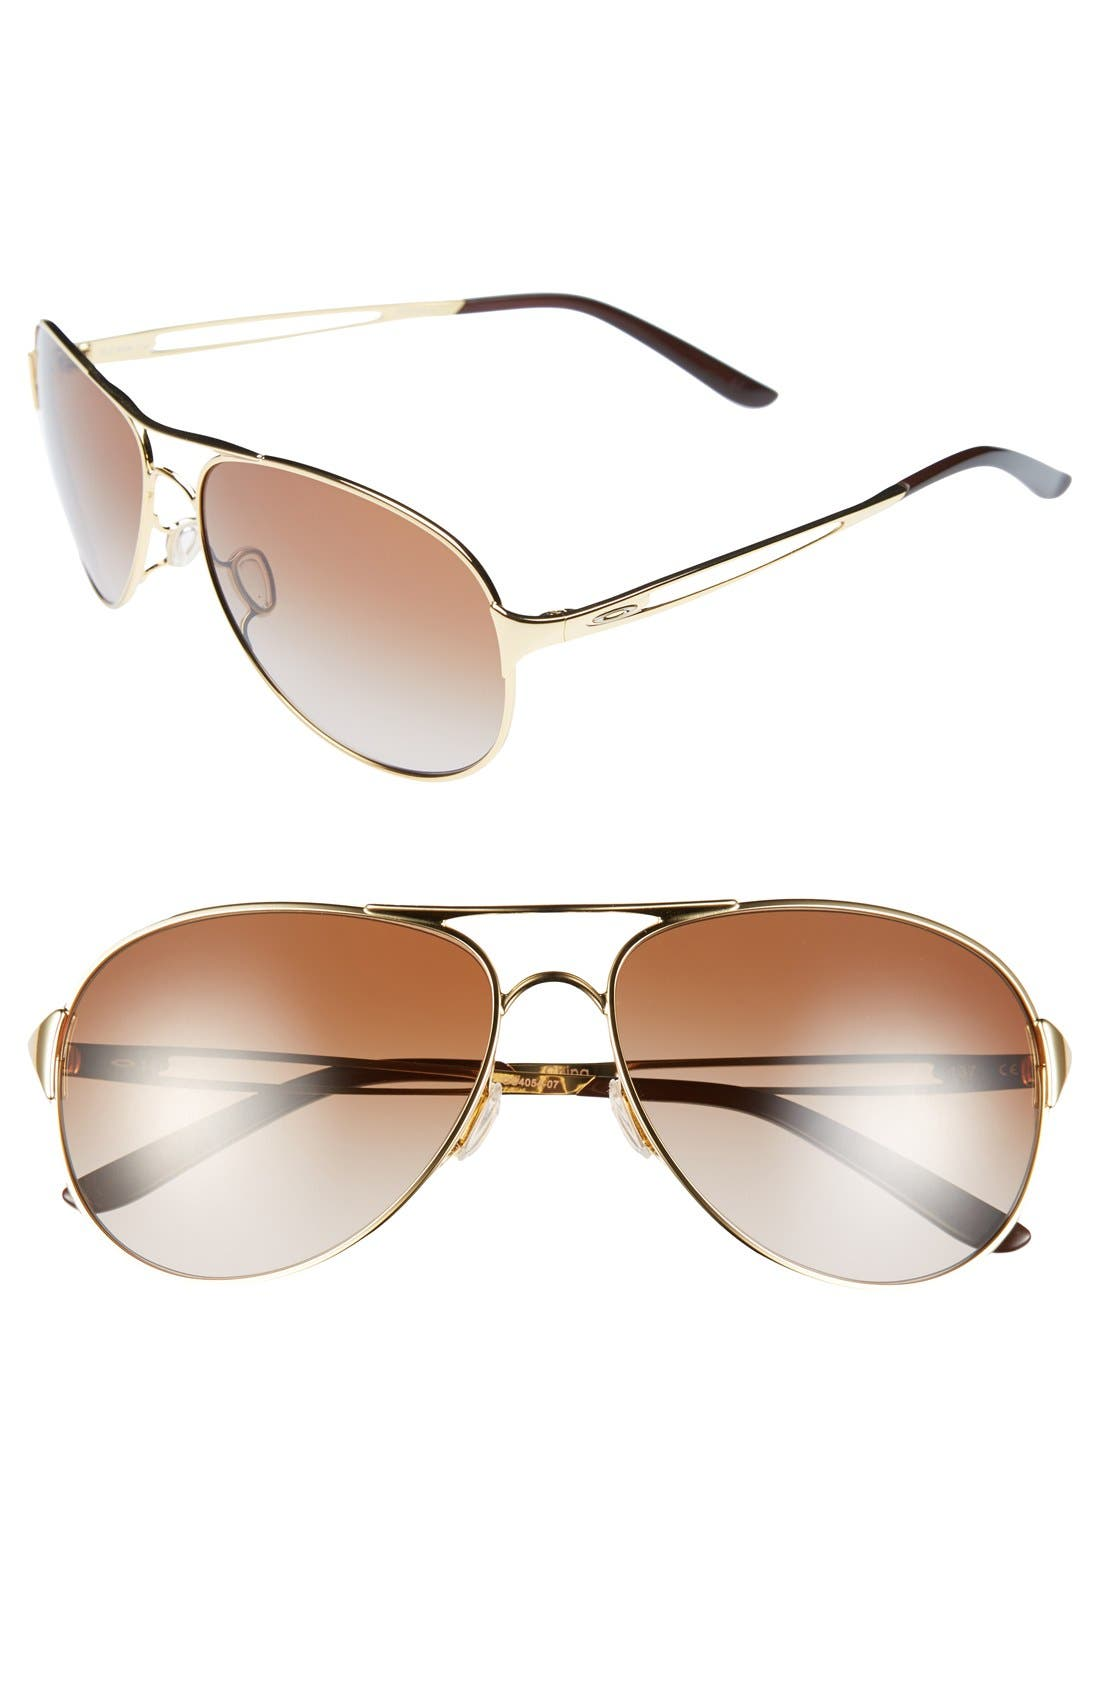 Alternate Image 1 Selected - Oakley 'Caveat™' 60mm Aviator Sunglasses